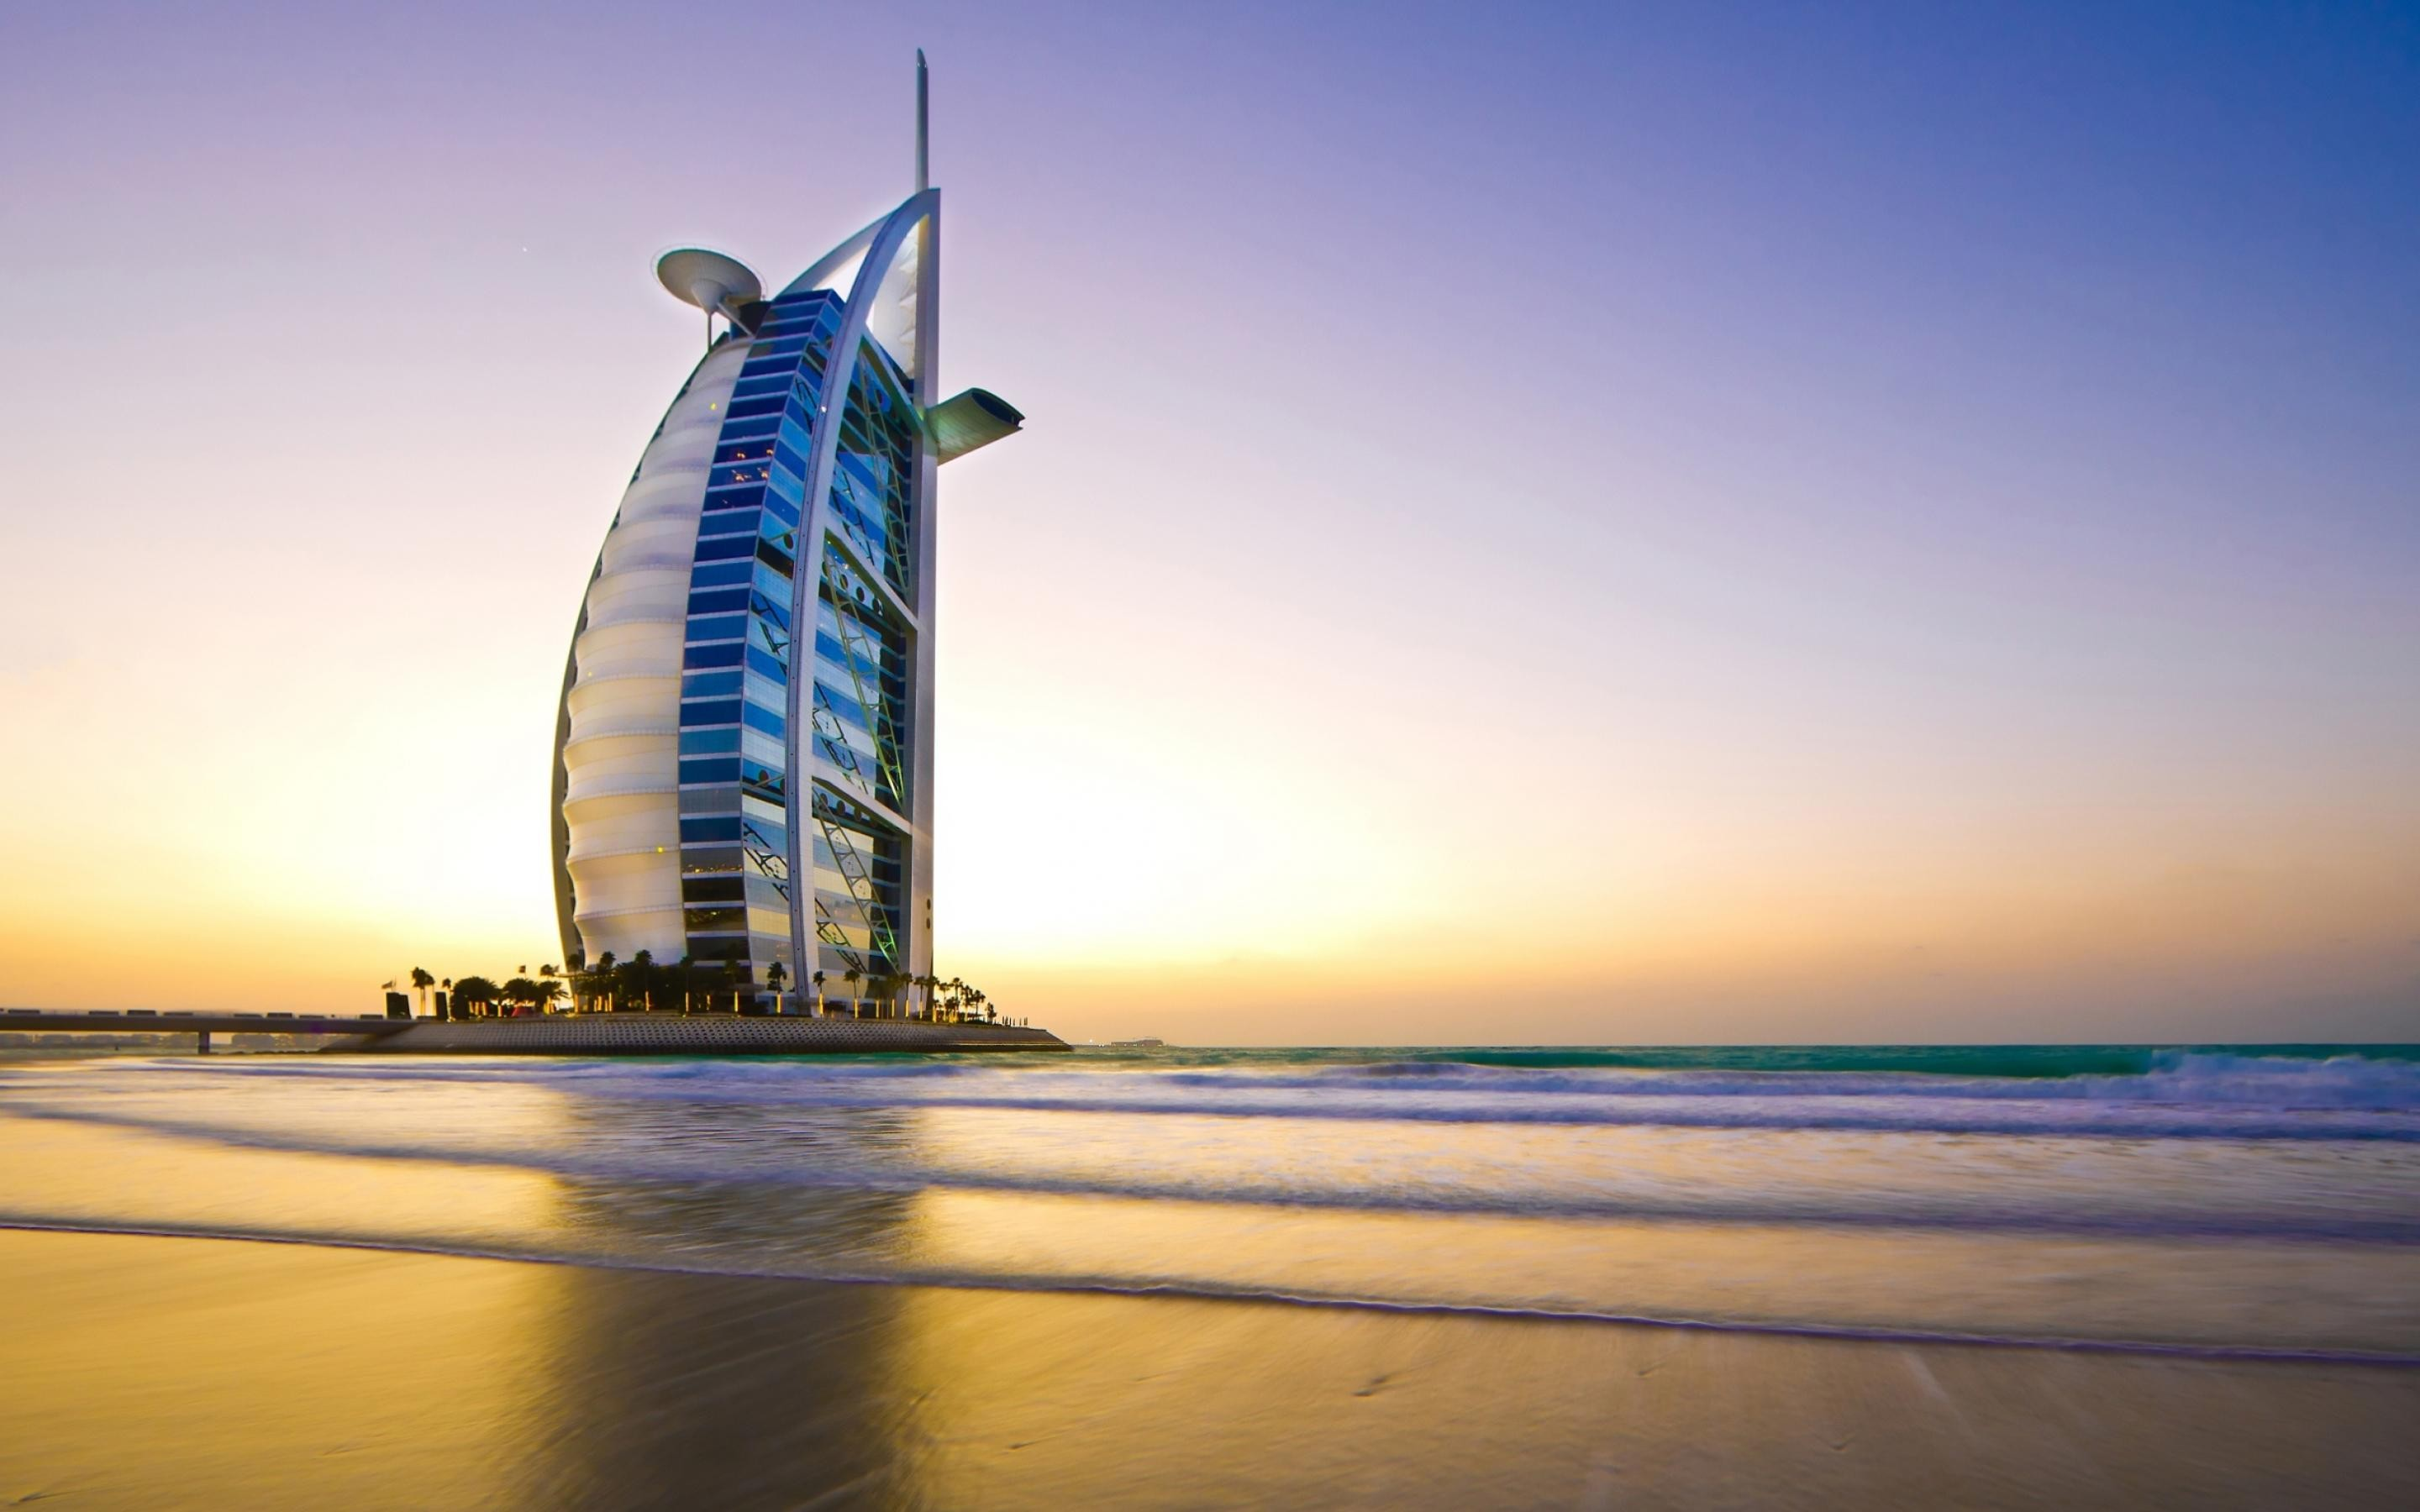 Burj Al Arab Dubai UAE HD Wallpaper 1 2880x1800